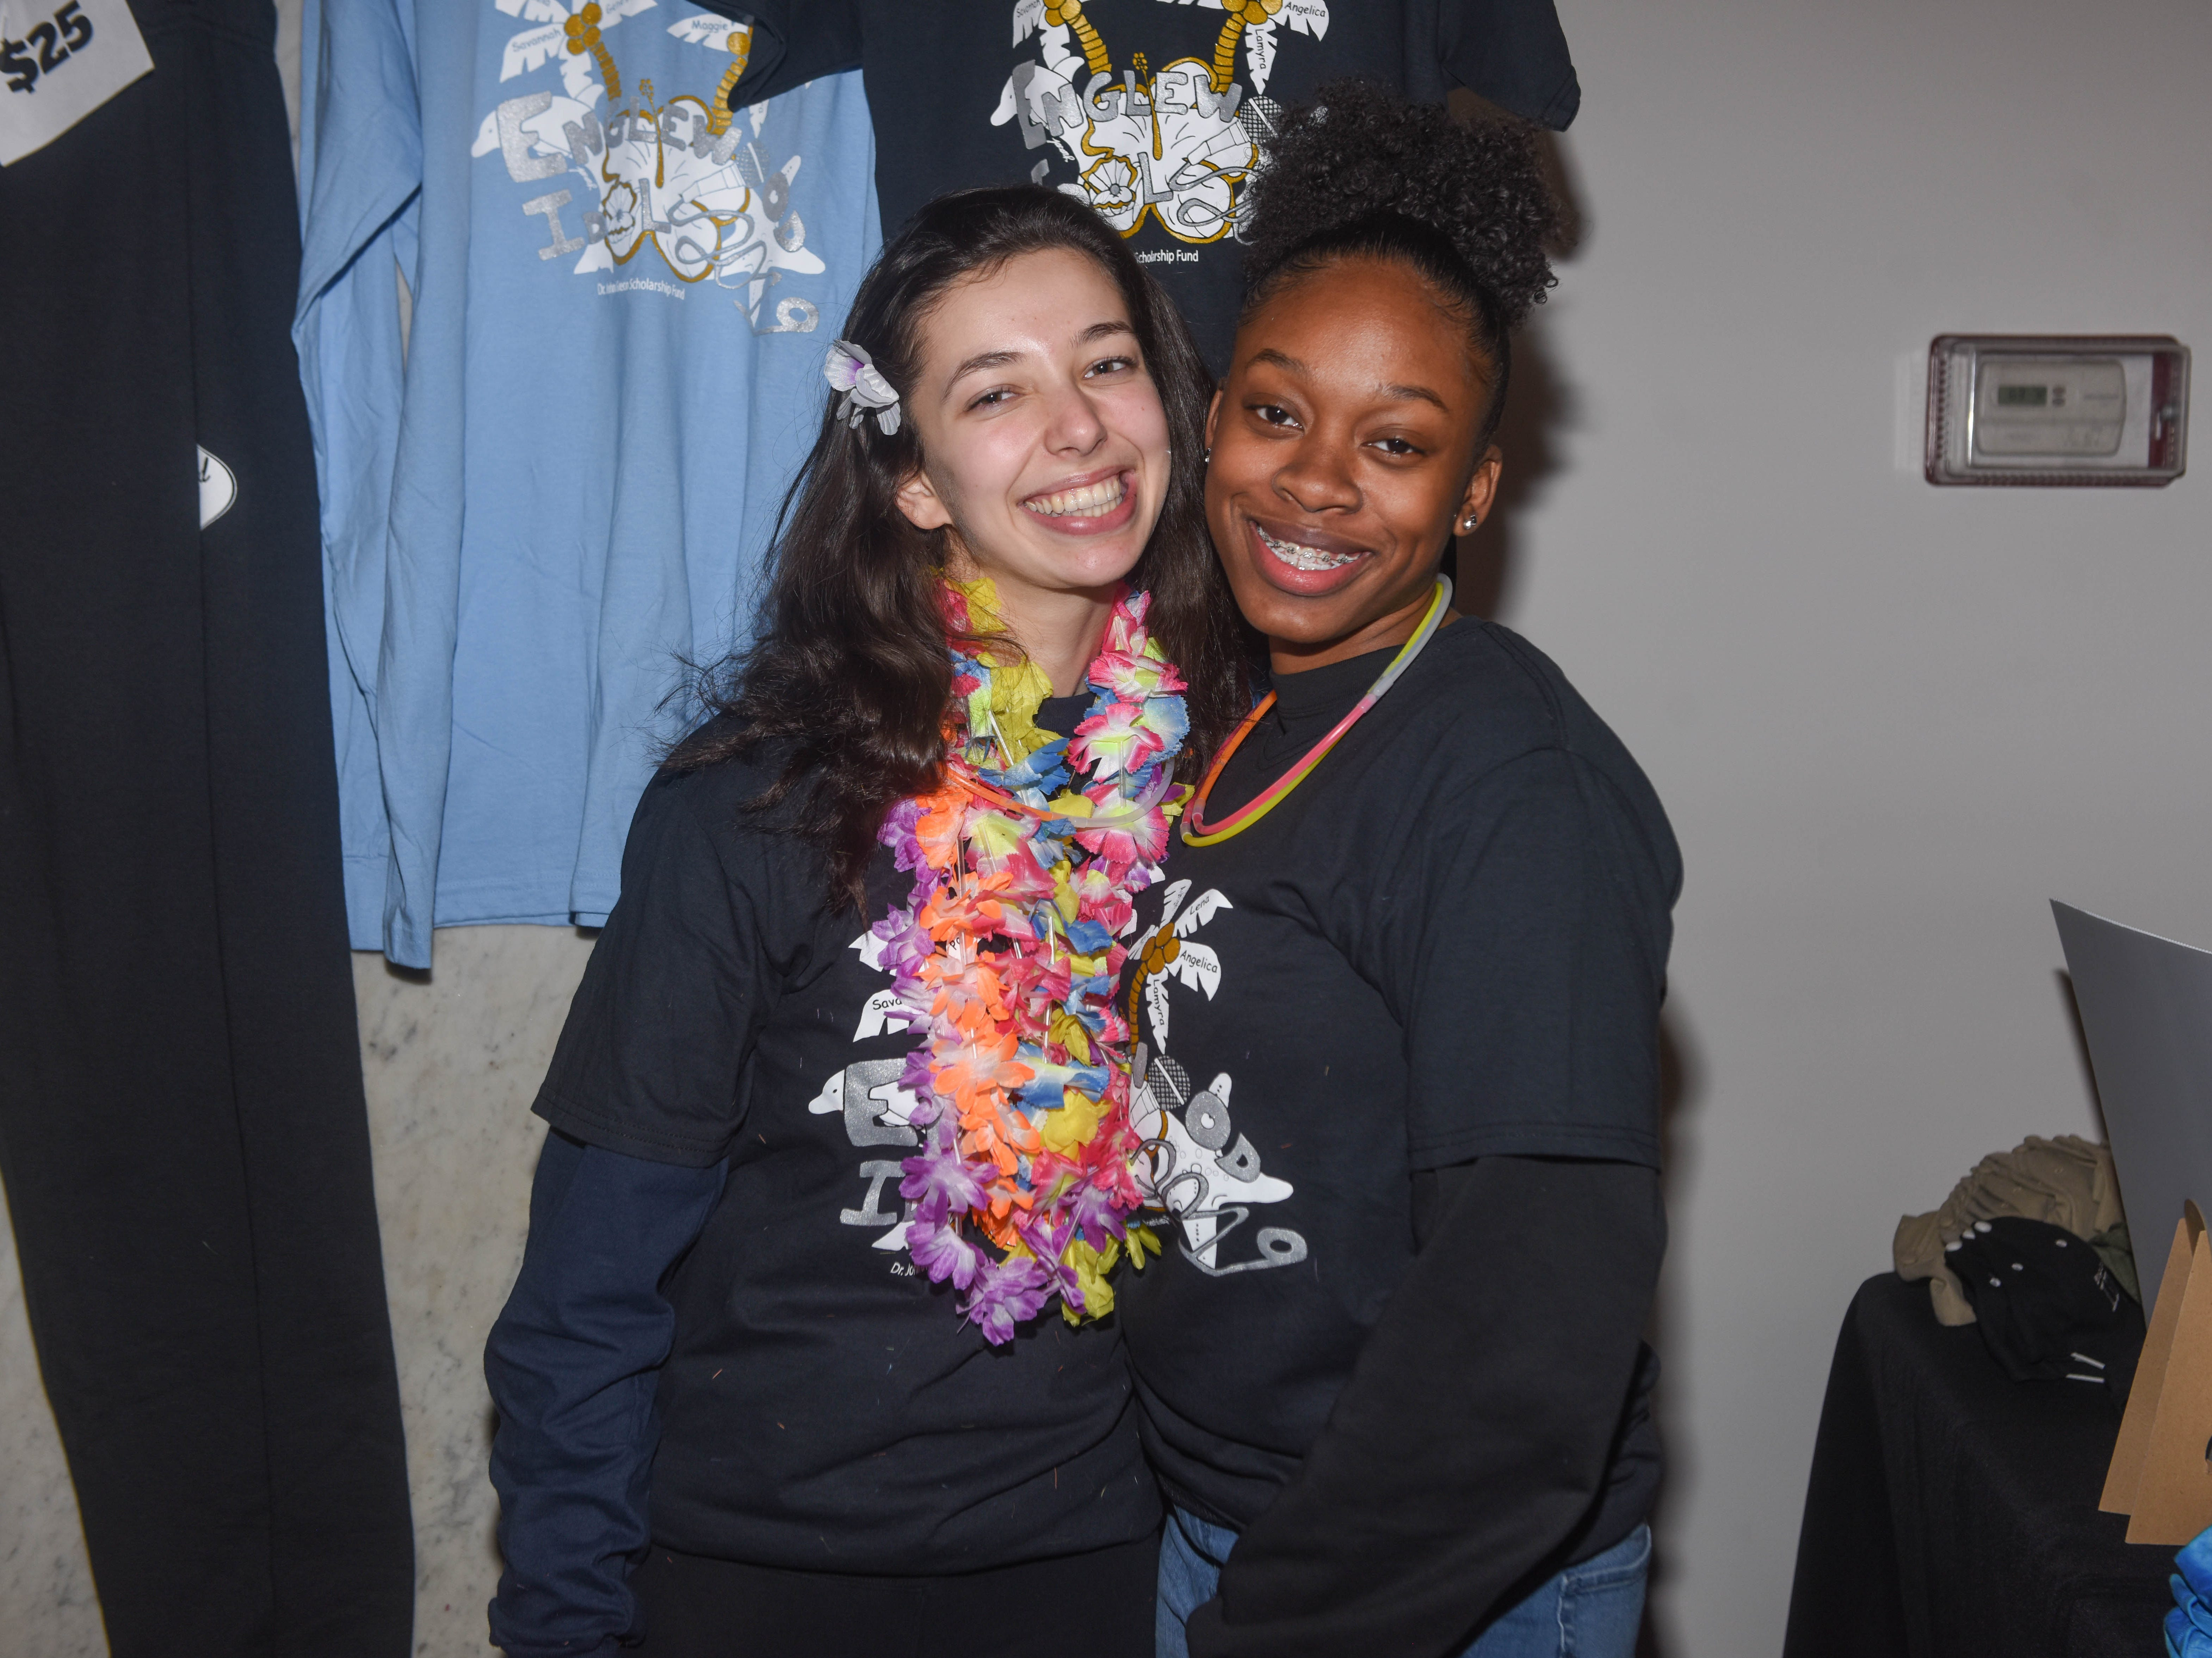 Emilia Bern and Sarai Crawford. The 2019 Englewood Idol was held at bergenPAC theater. The singing competition is open to any high school student who currently lives or goes to school in Englewood, NJ. This years winner was Genesis Capellan. 01/11/2019